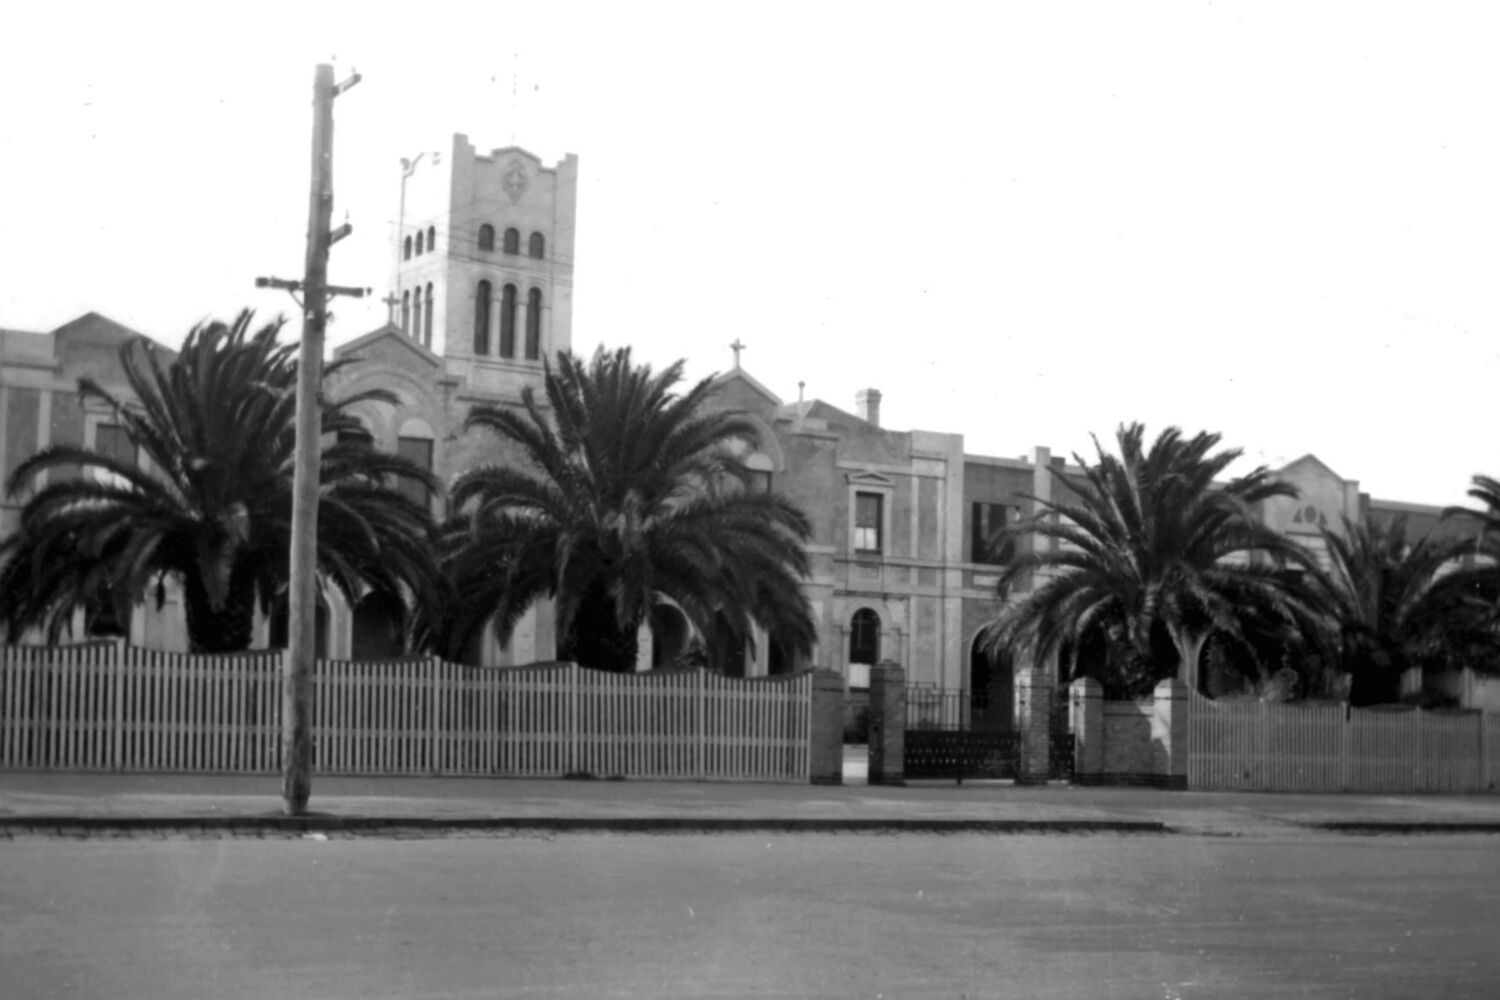 St Vincent's Boys' Orphanage in South Melbourne, circa 1945